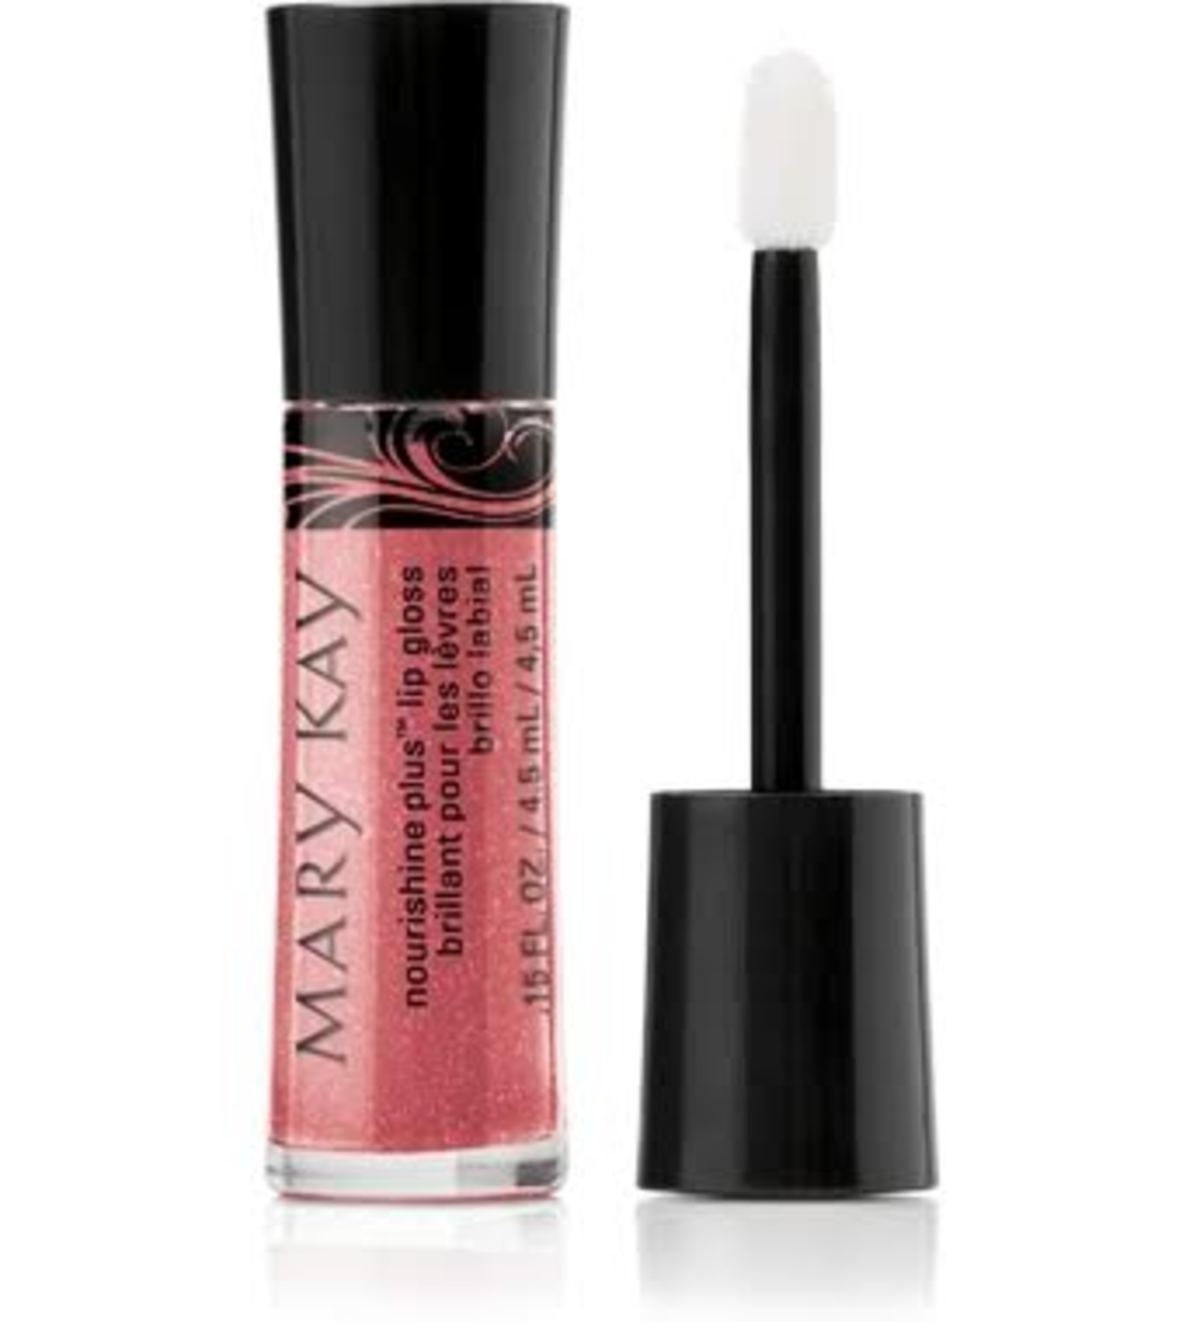 MARY KAY NOURISHINE PLUS IN PINK LUSTER